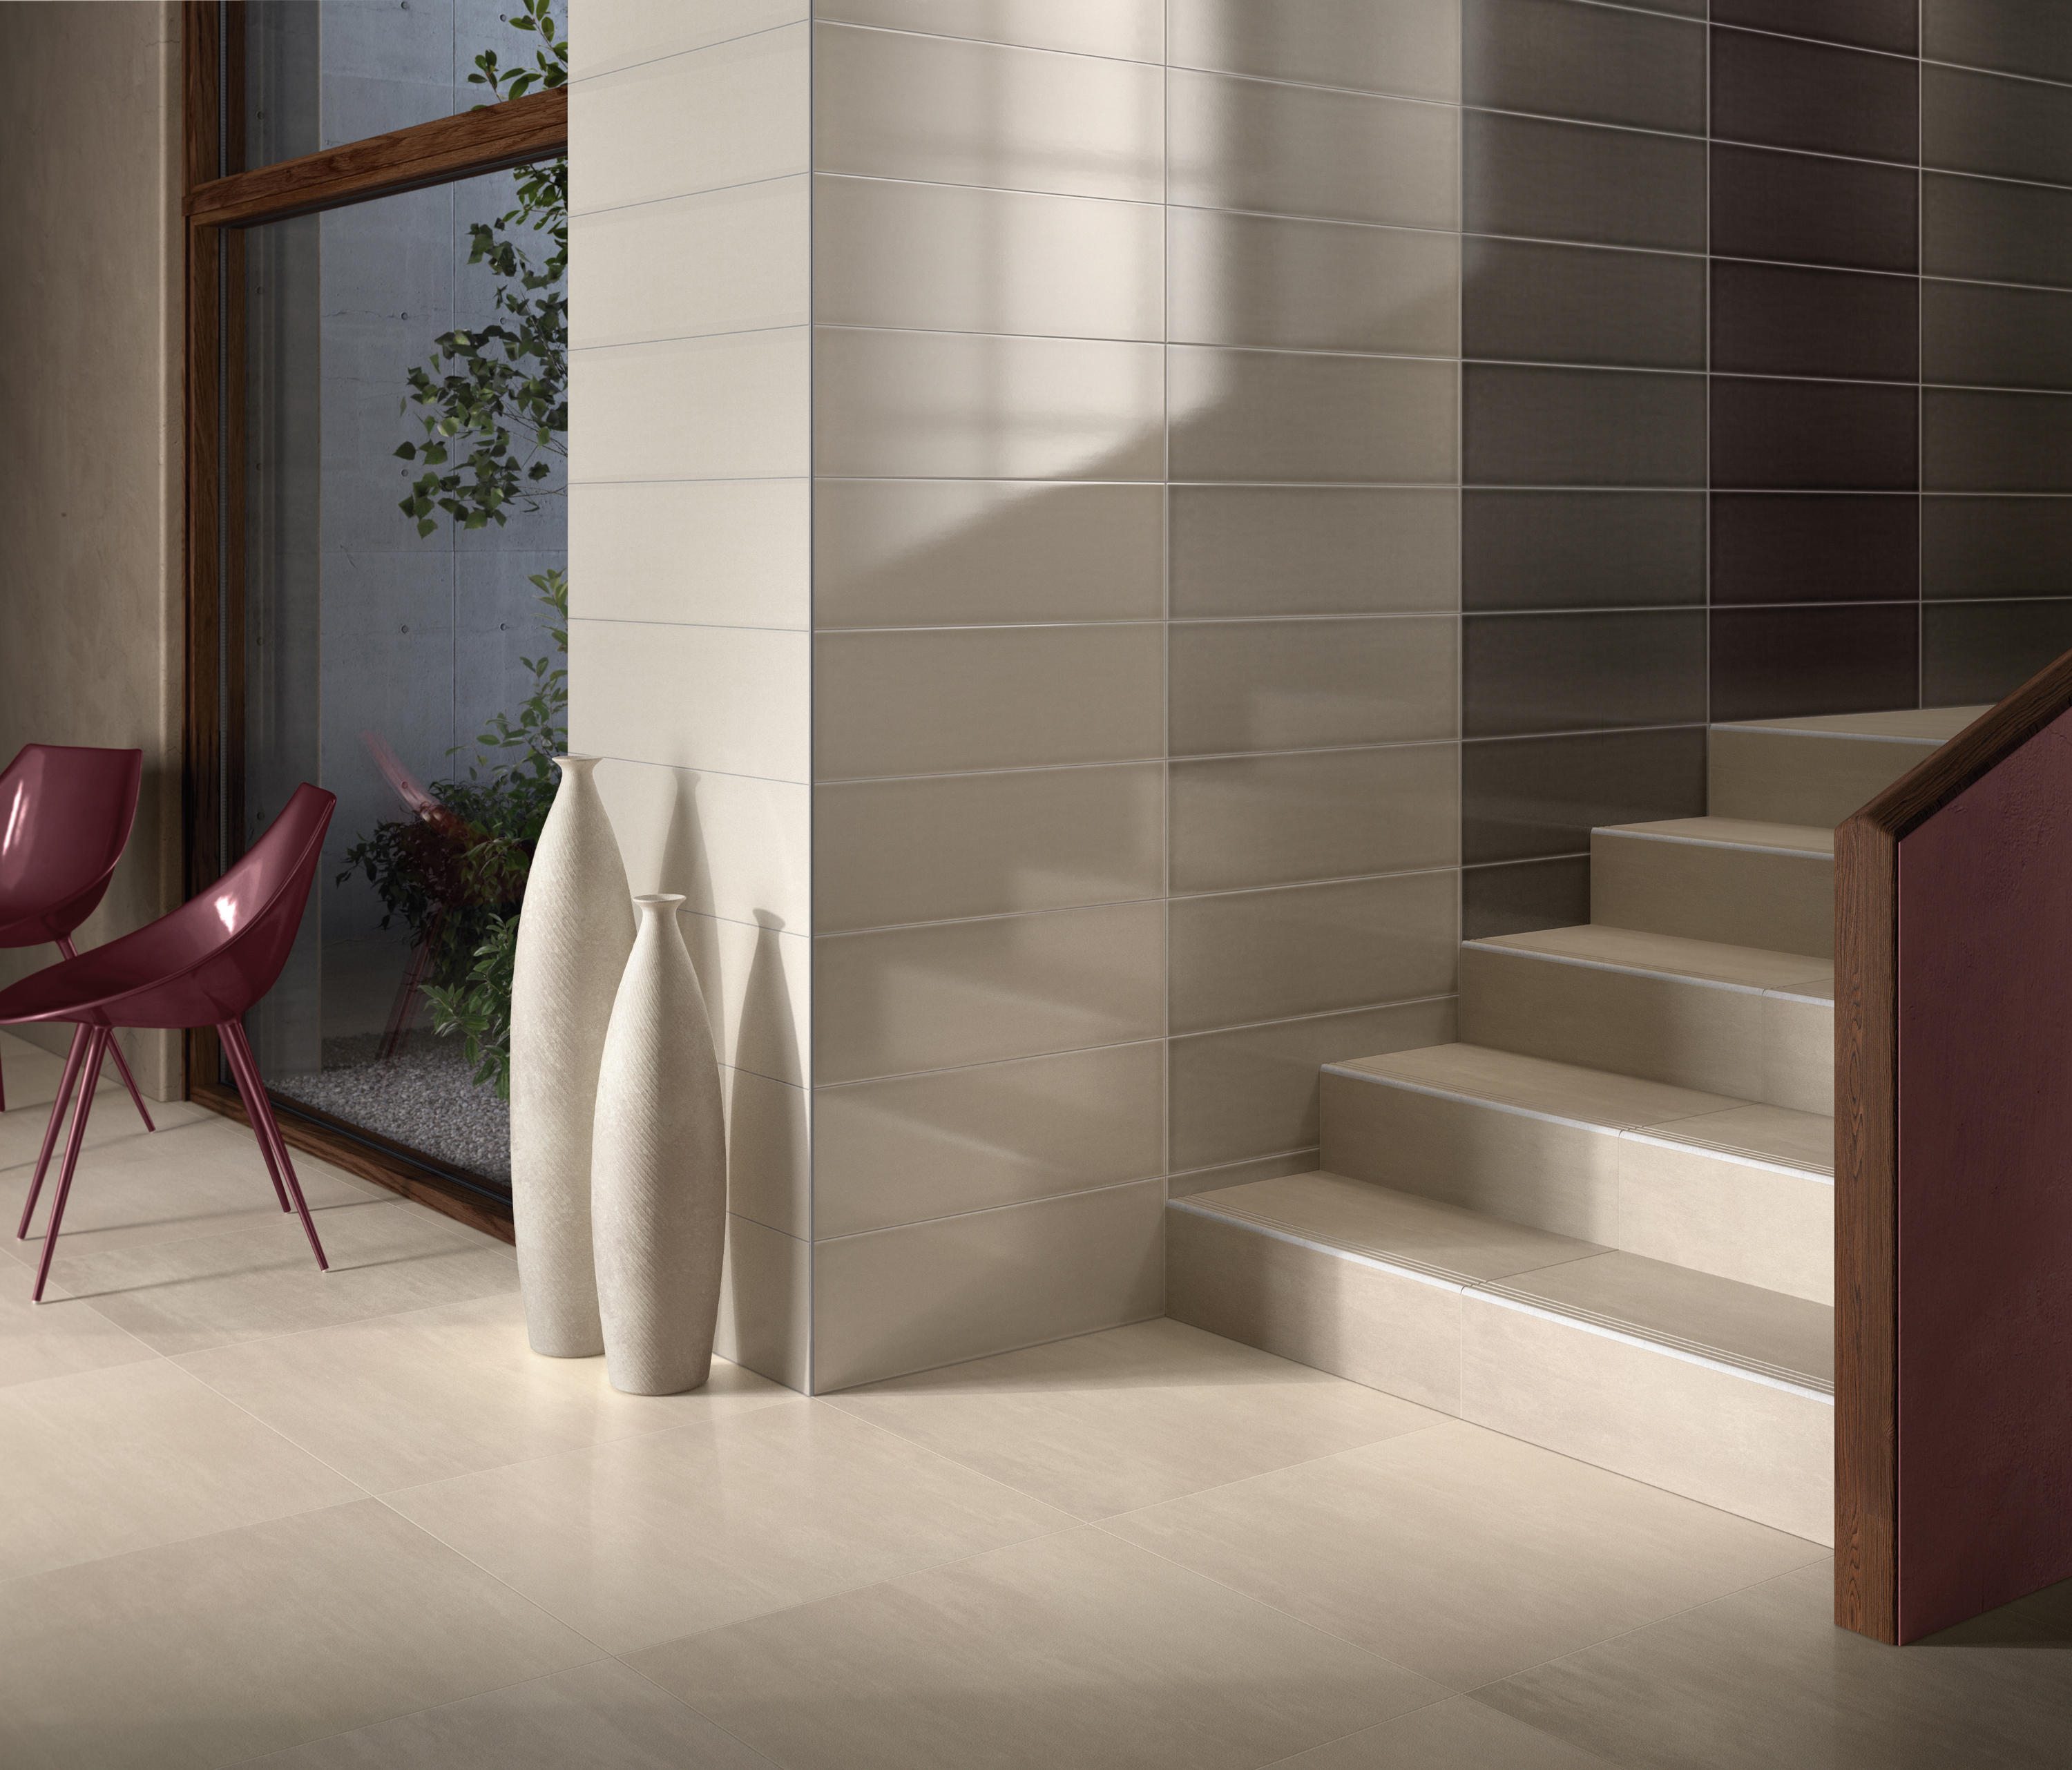 Fliesen Concept: Ceramic Tiles From Villeroy